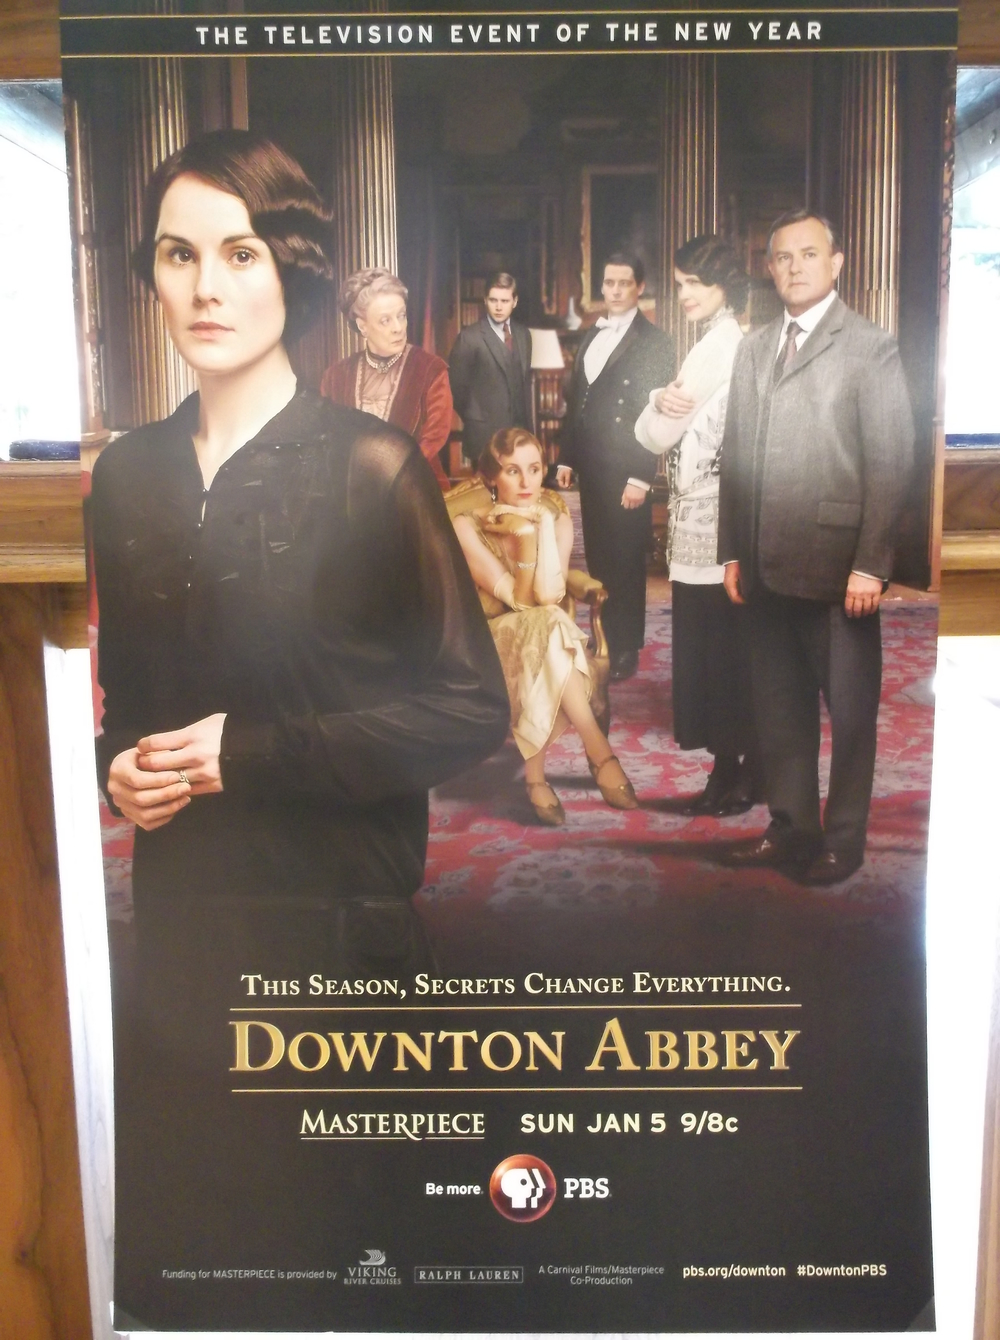 Downton Abbey poster.JPG